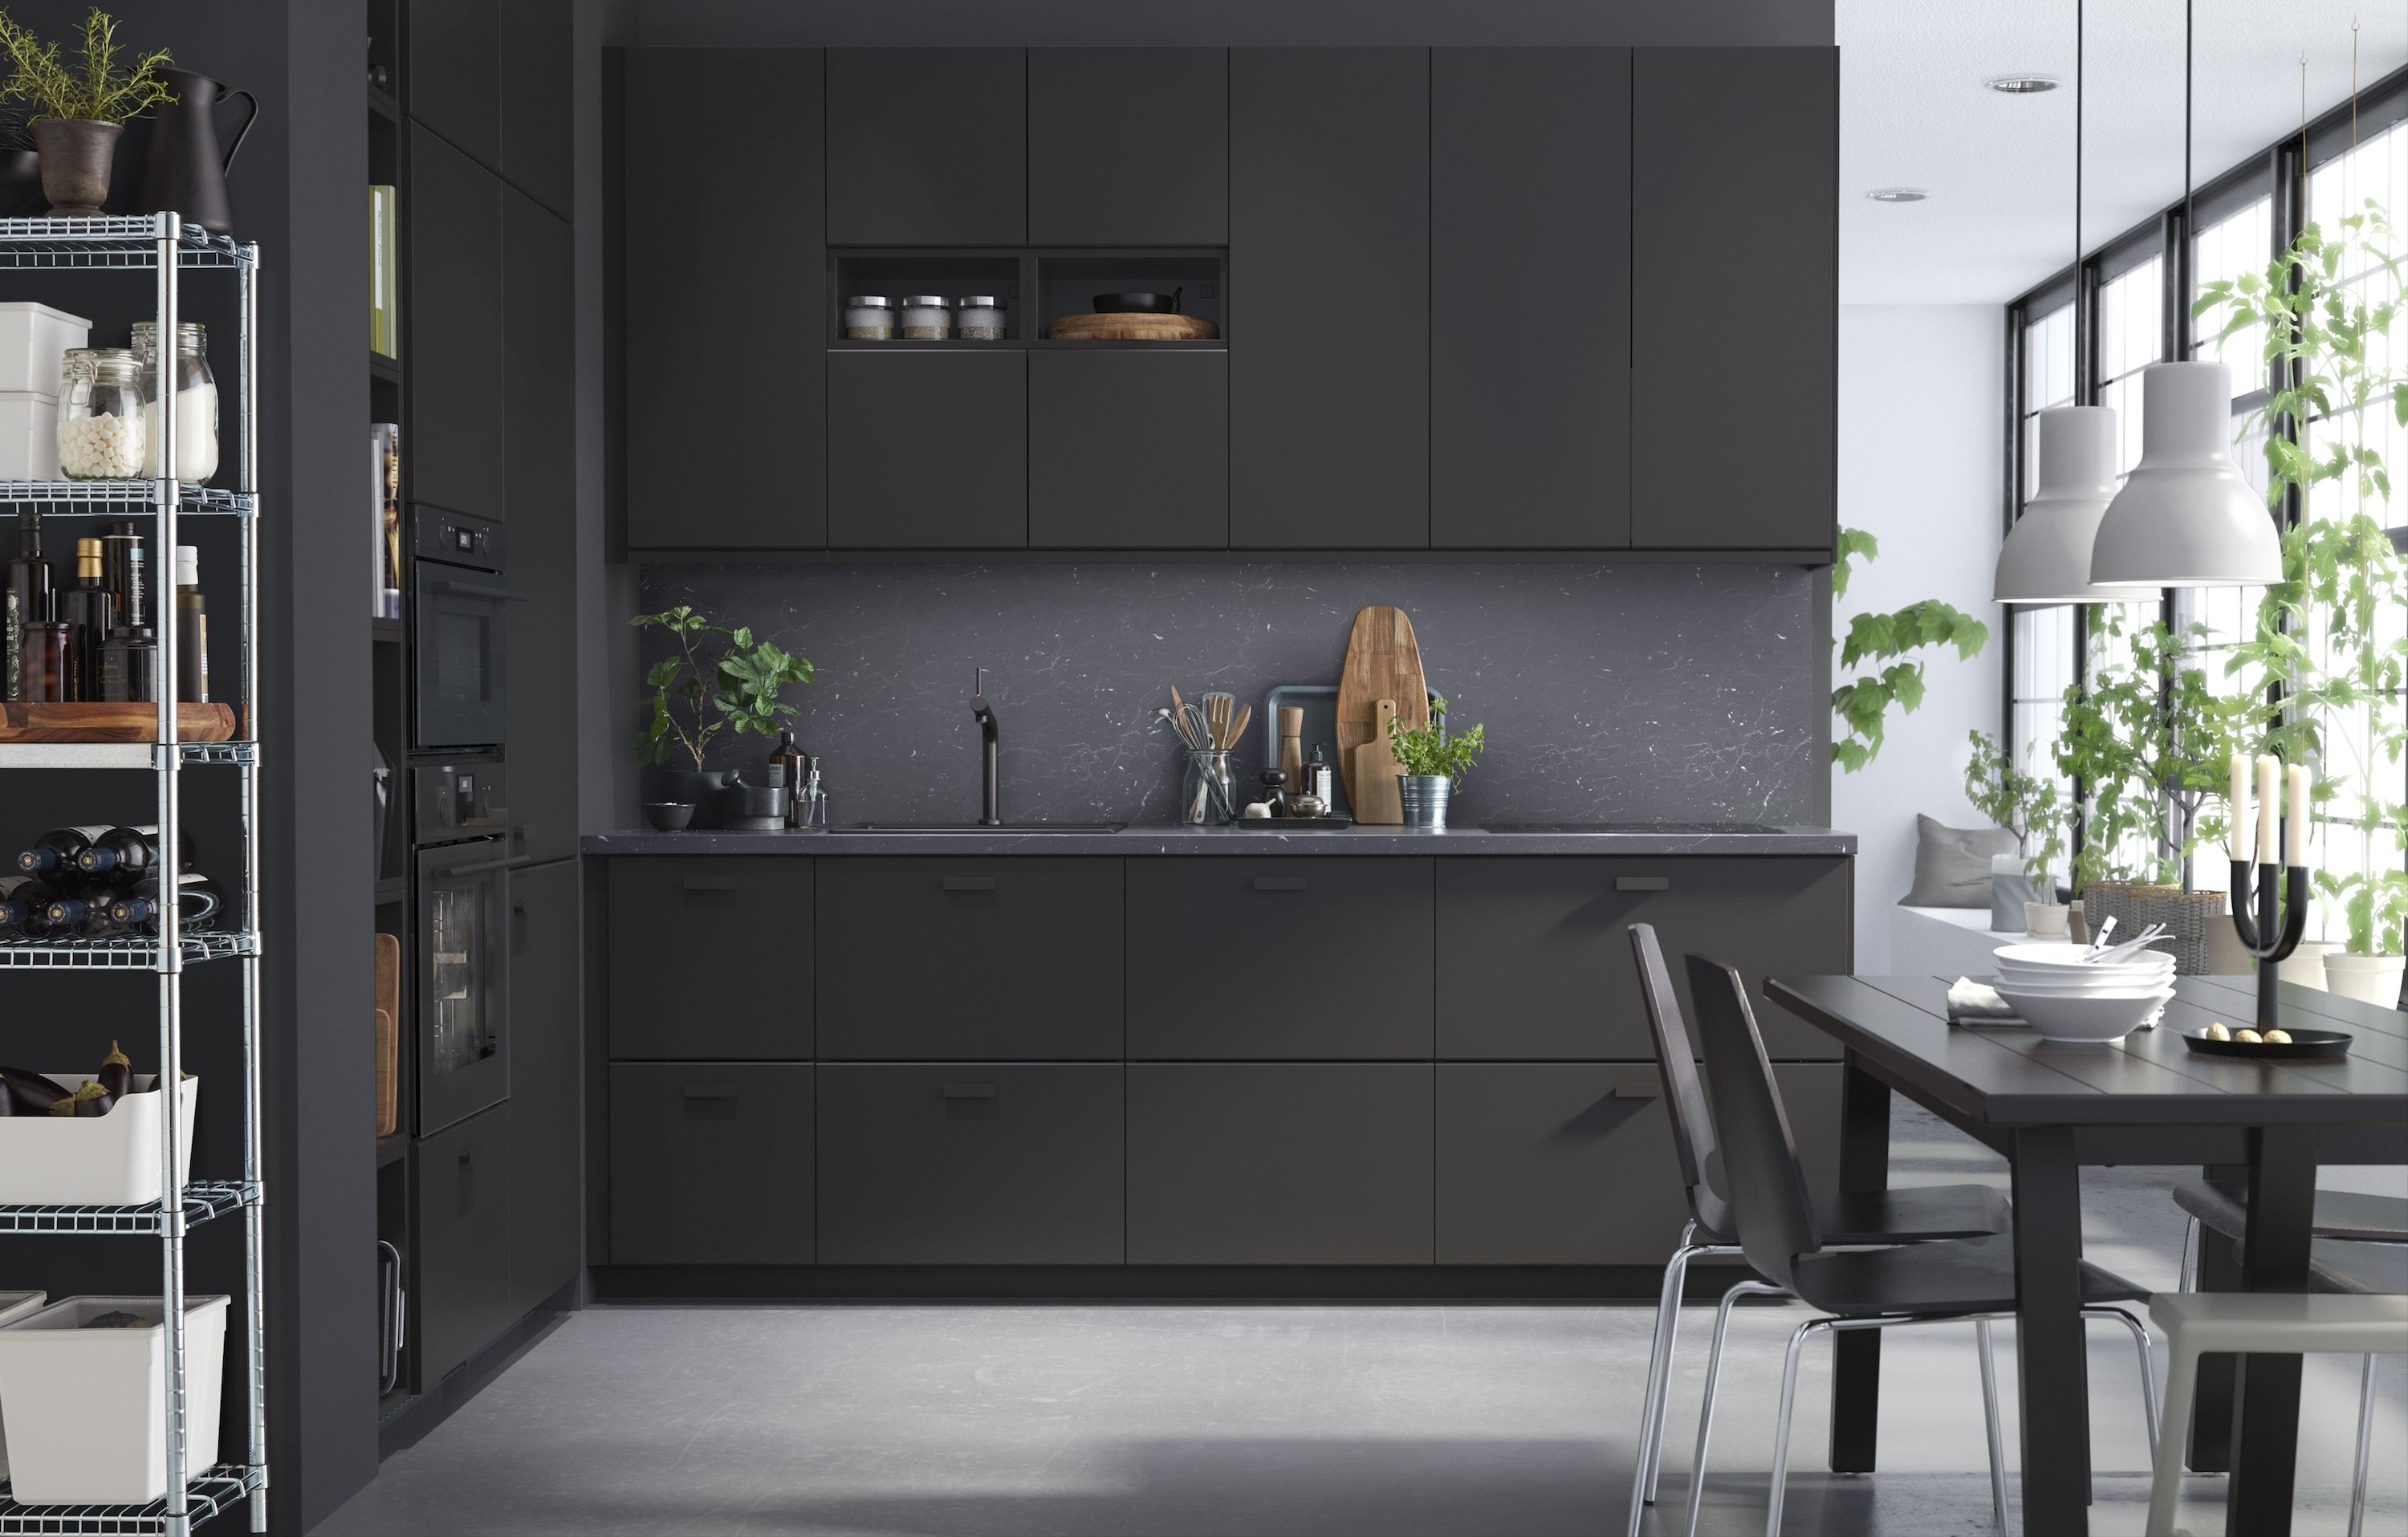 ikea kitchen cabinets made from recycled materials black ikea cabinets - Ikea Black Kitchen Cabinets